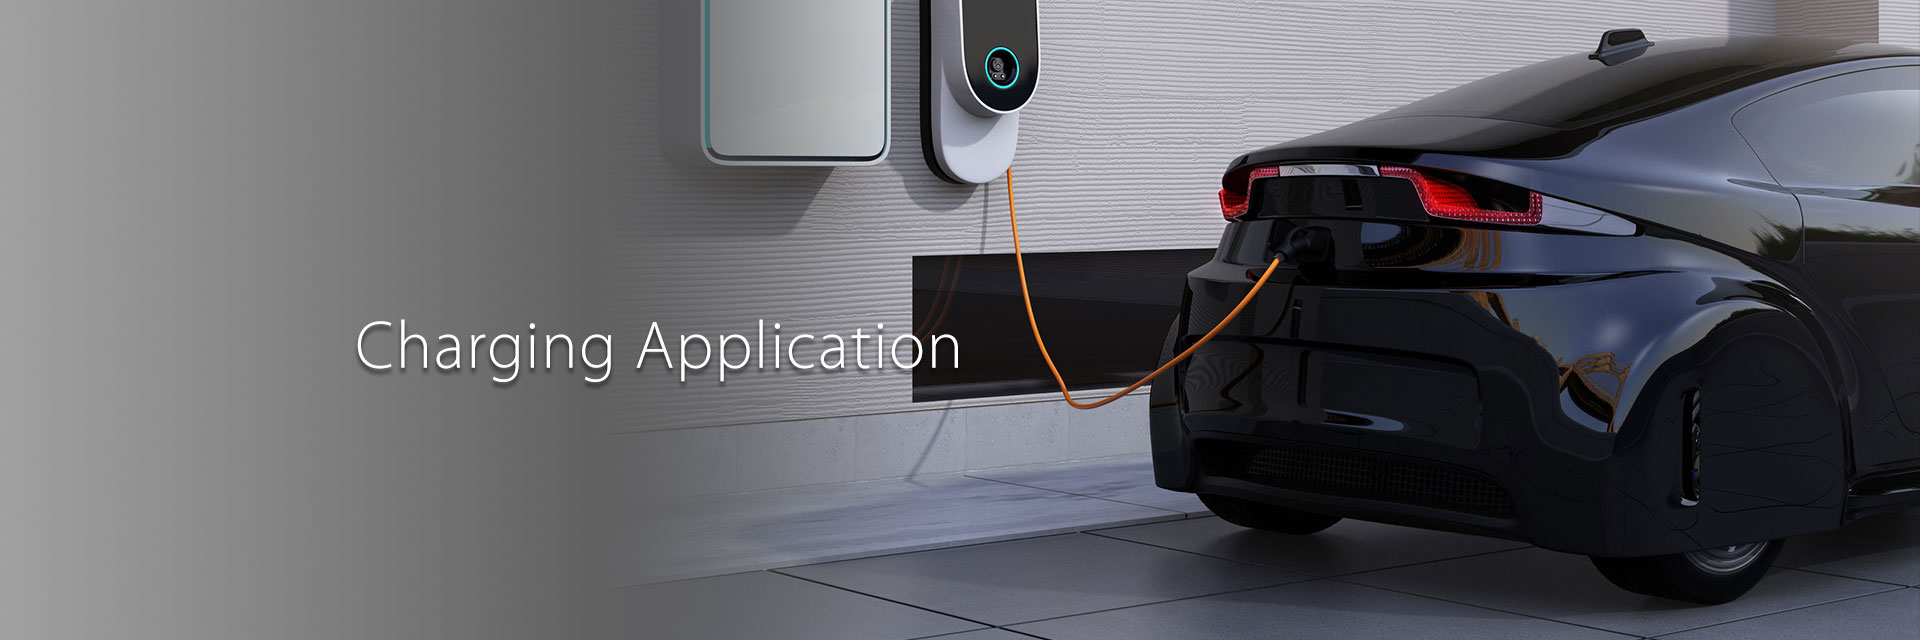 Charging Application